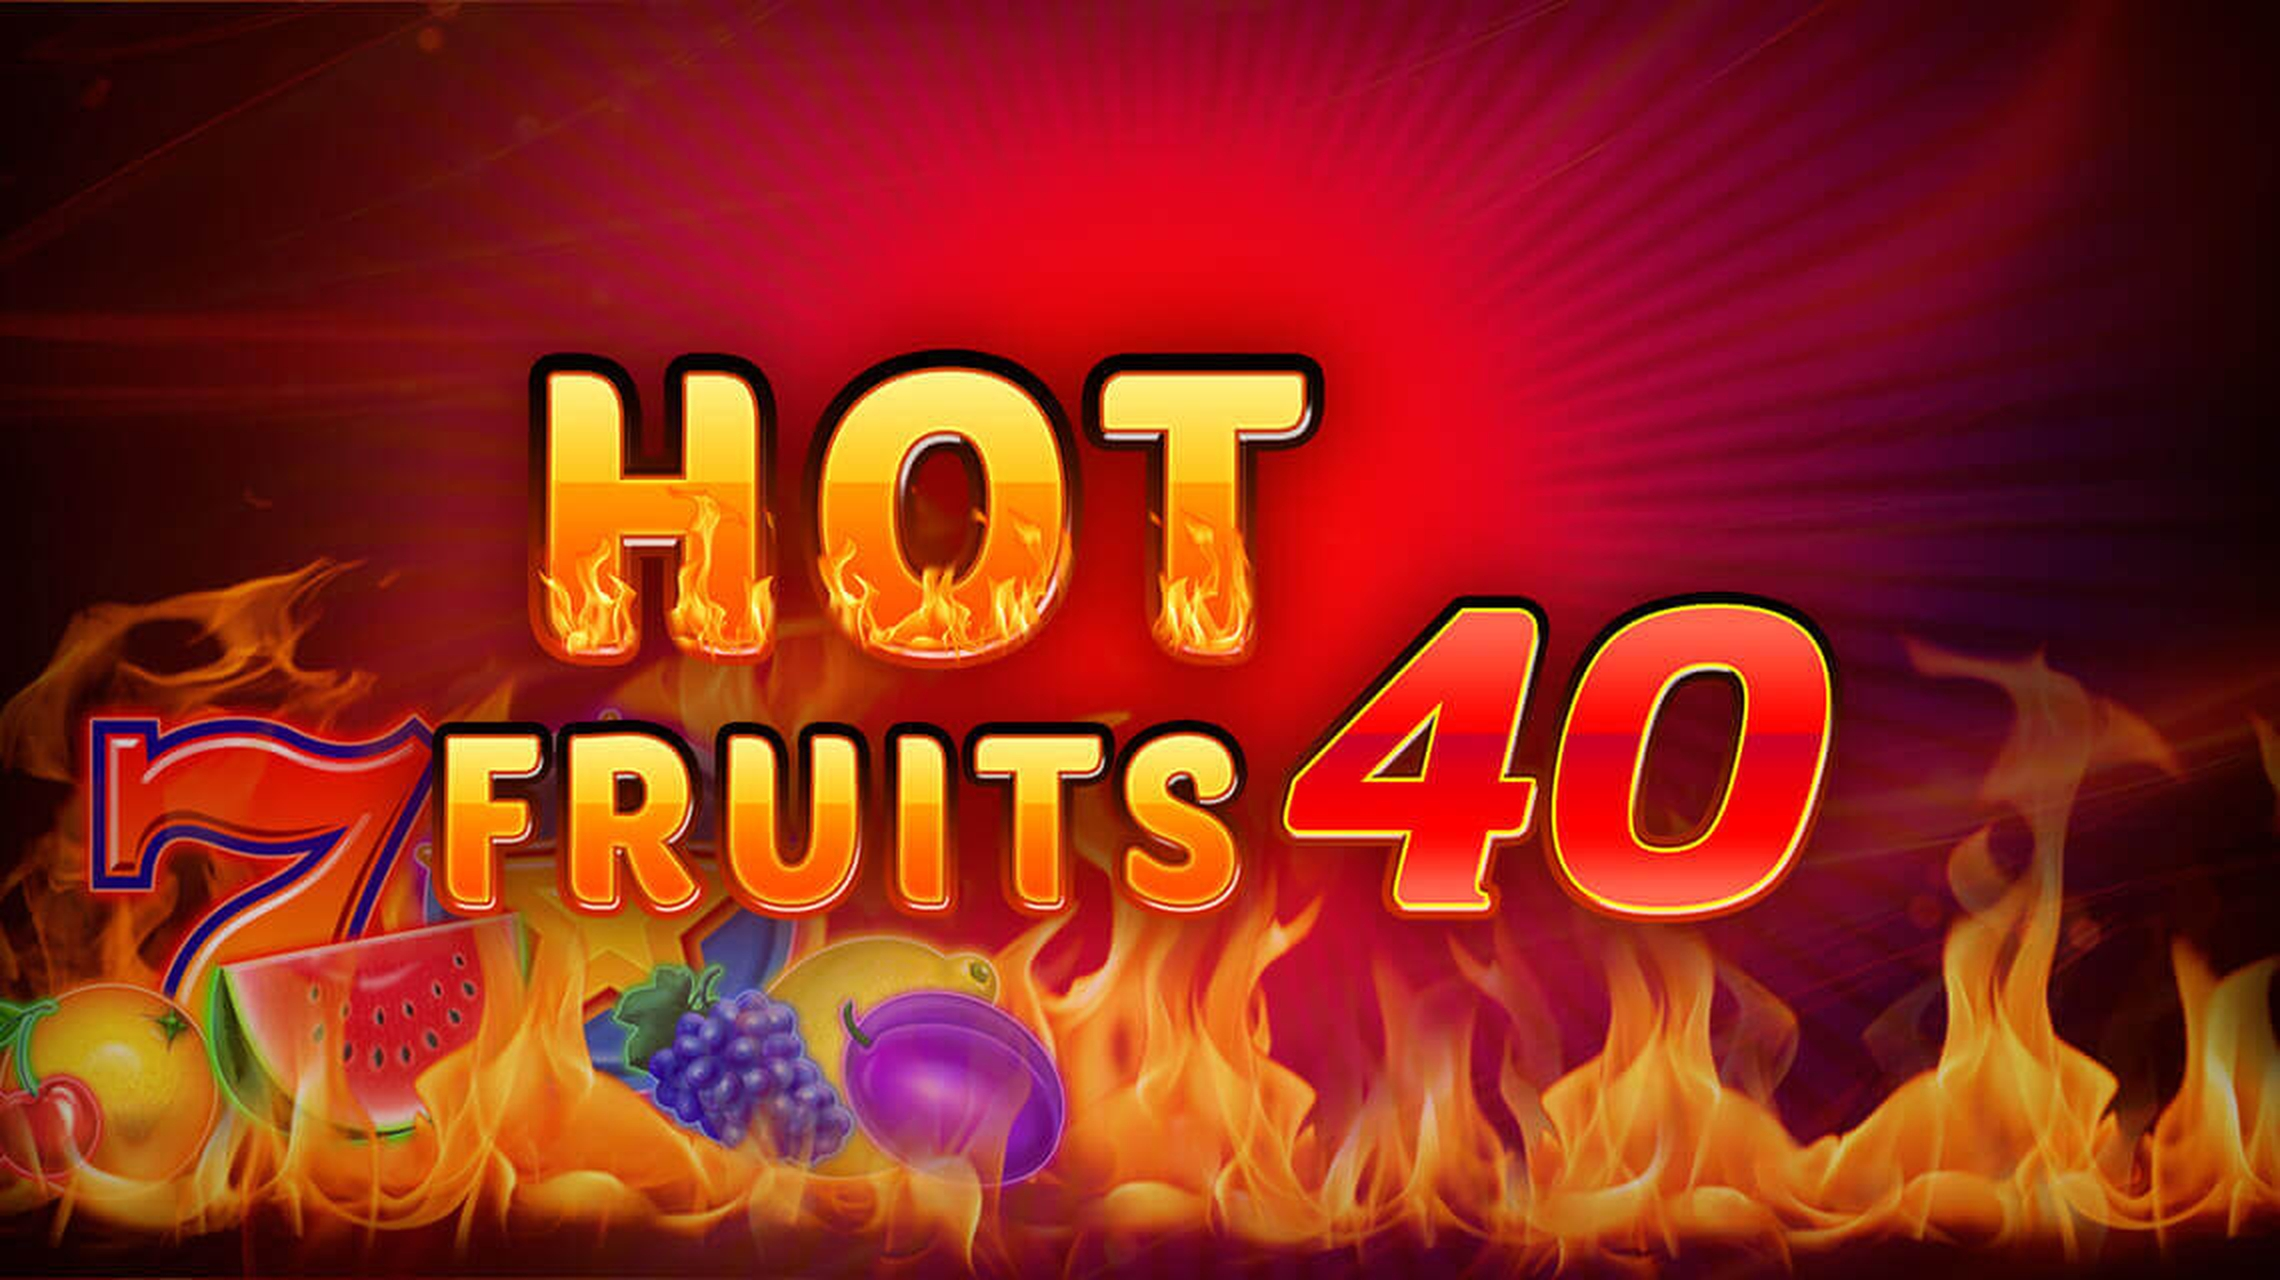 The Hot Fruits 27 Online Slot Demo Game by Amatic Industries